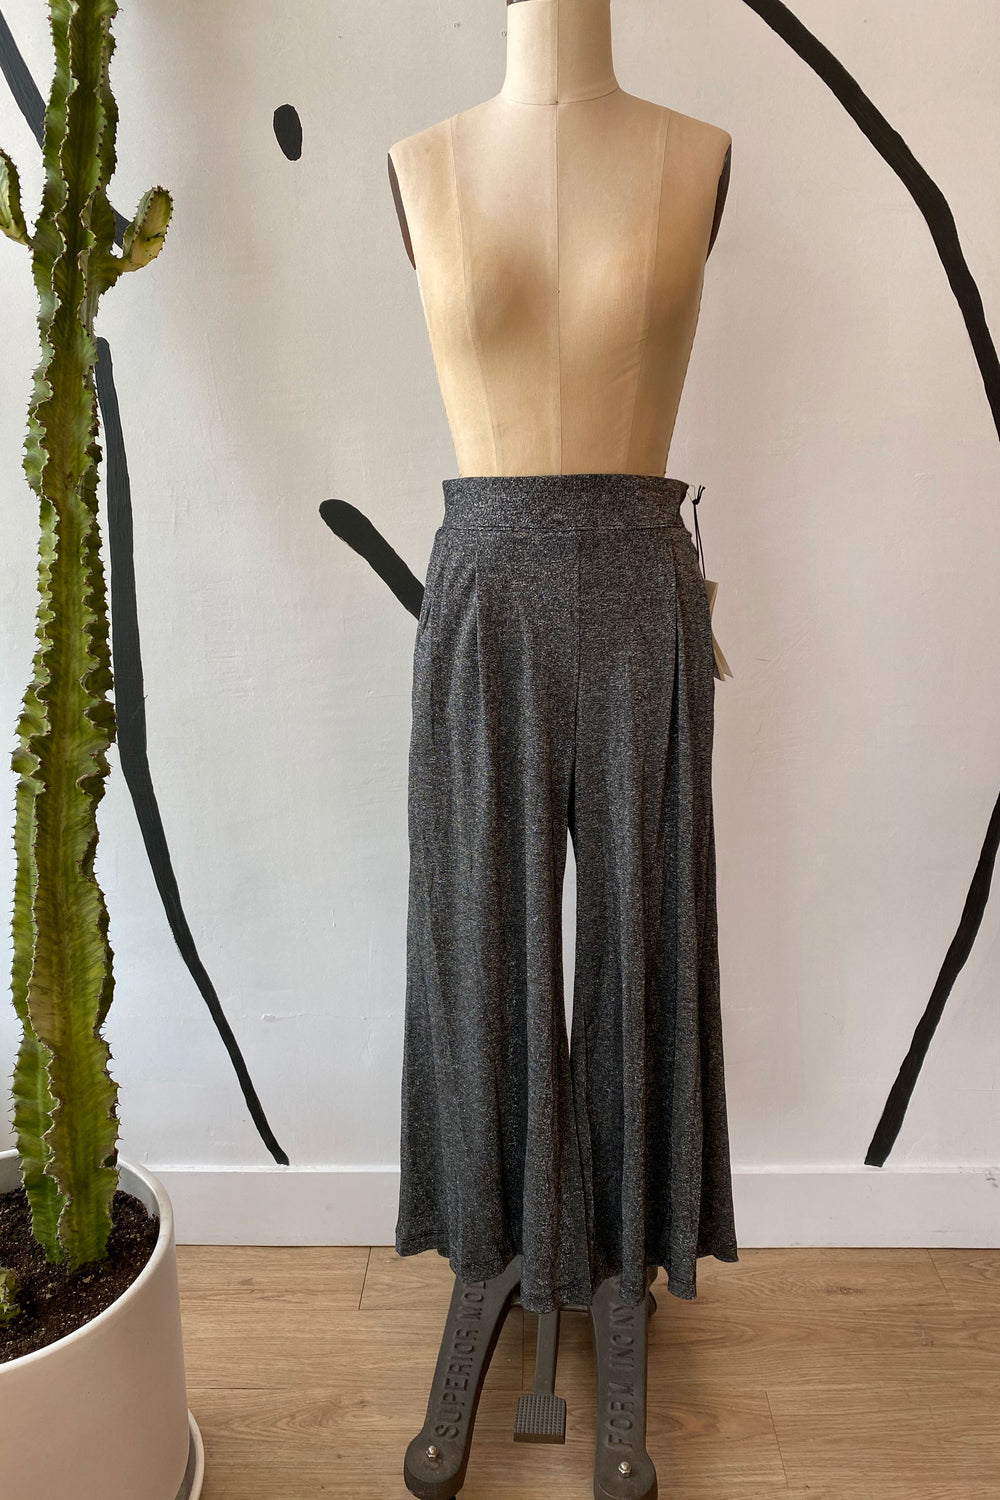 Sample Sale Valentina Pant in Metallic Black - Whimsy & Row